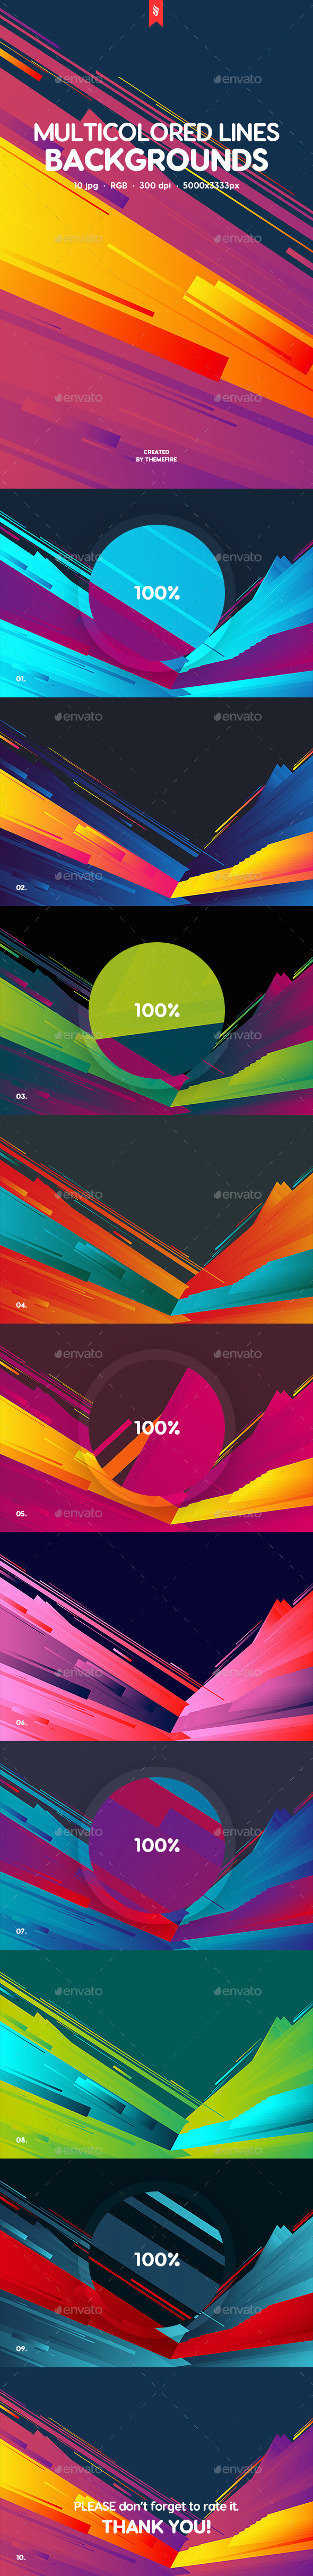 Abstract Multicolored Flat Layered Lines Backgrounds